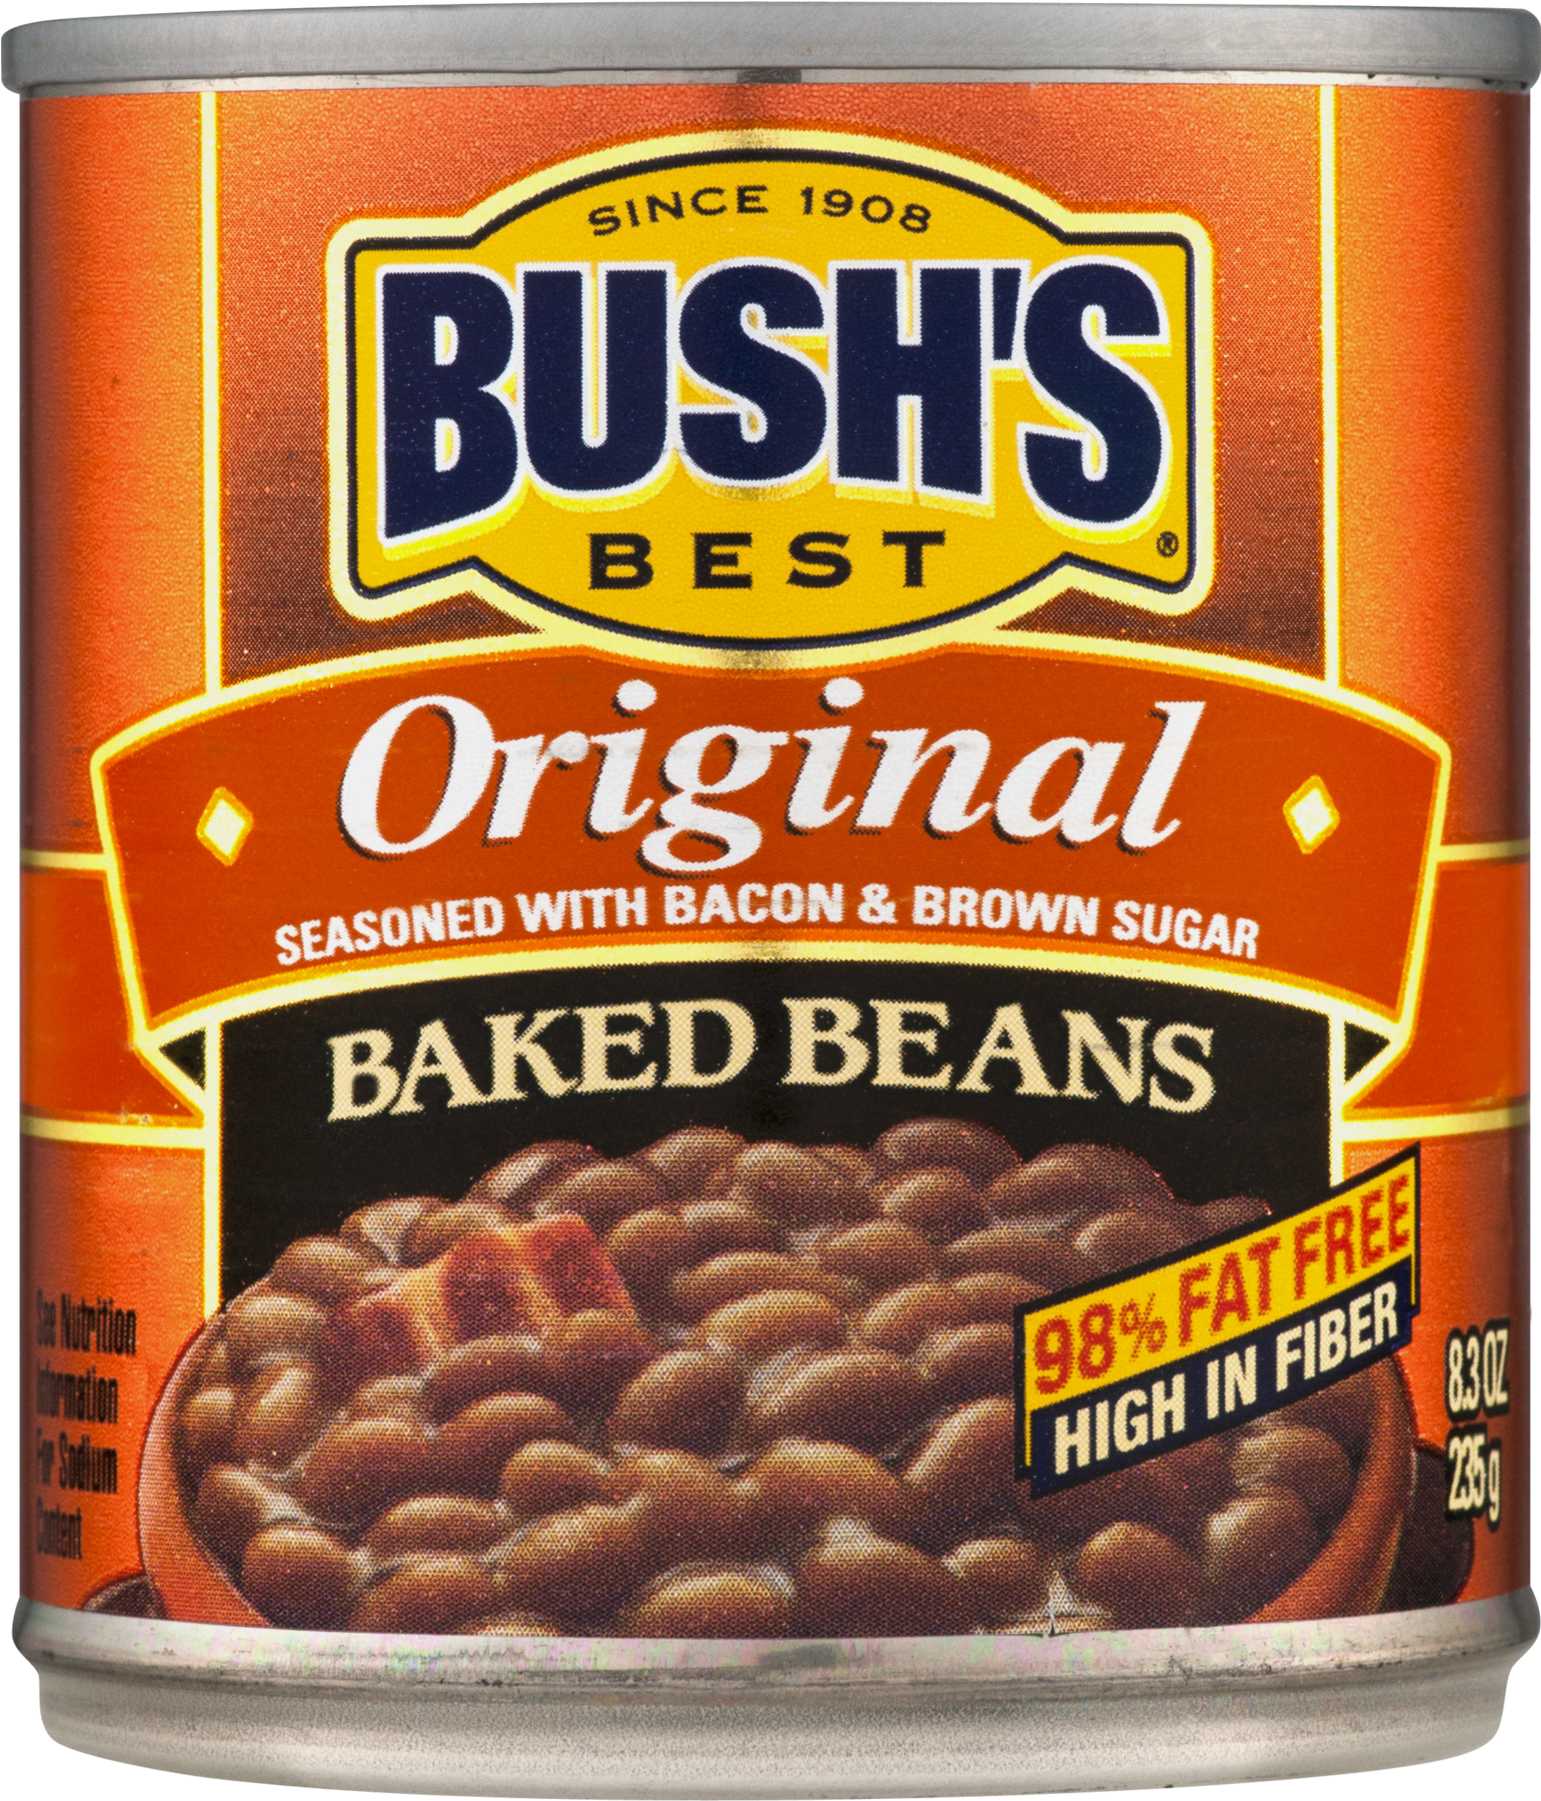 Download Bush S Best Original Baked Beans Original Bush S Baked Beans Png Image With No Background Pngkey Com